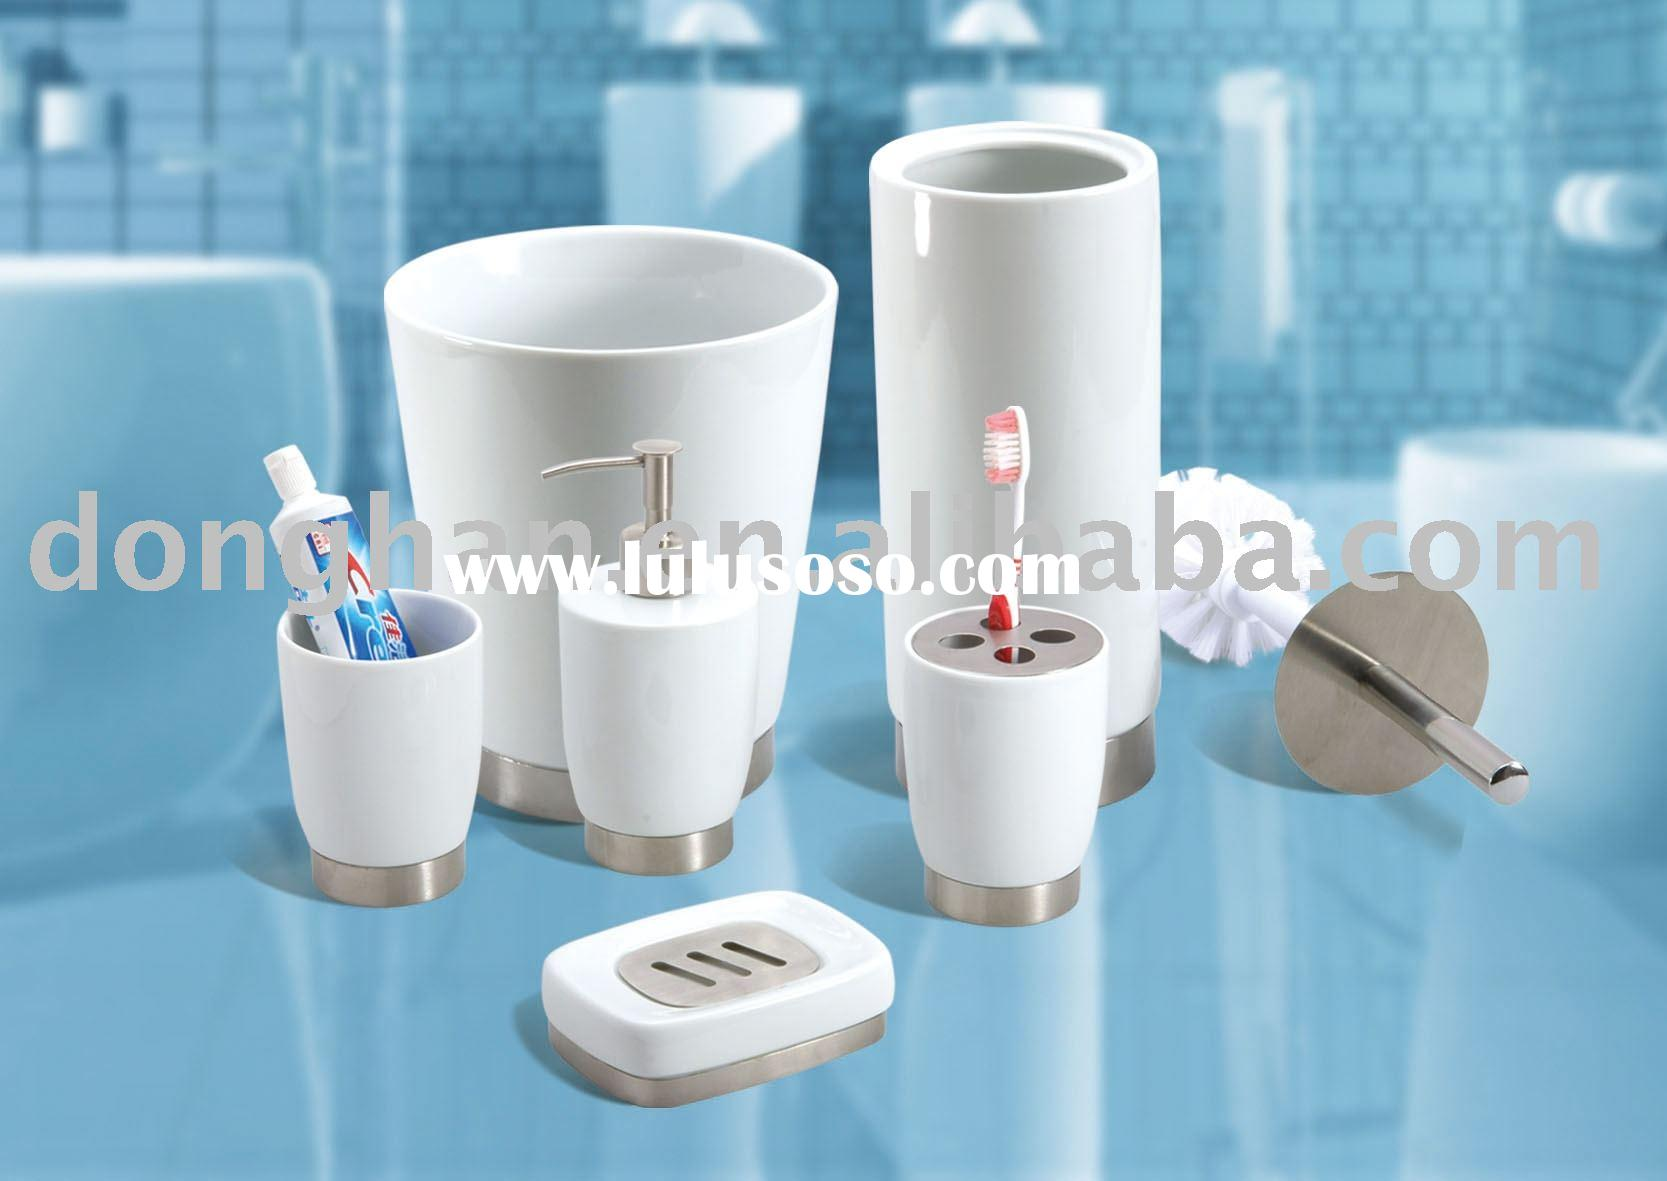 high-class ceramic bathroom accessories with stainless steel